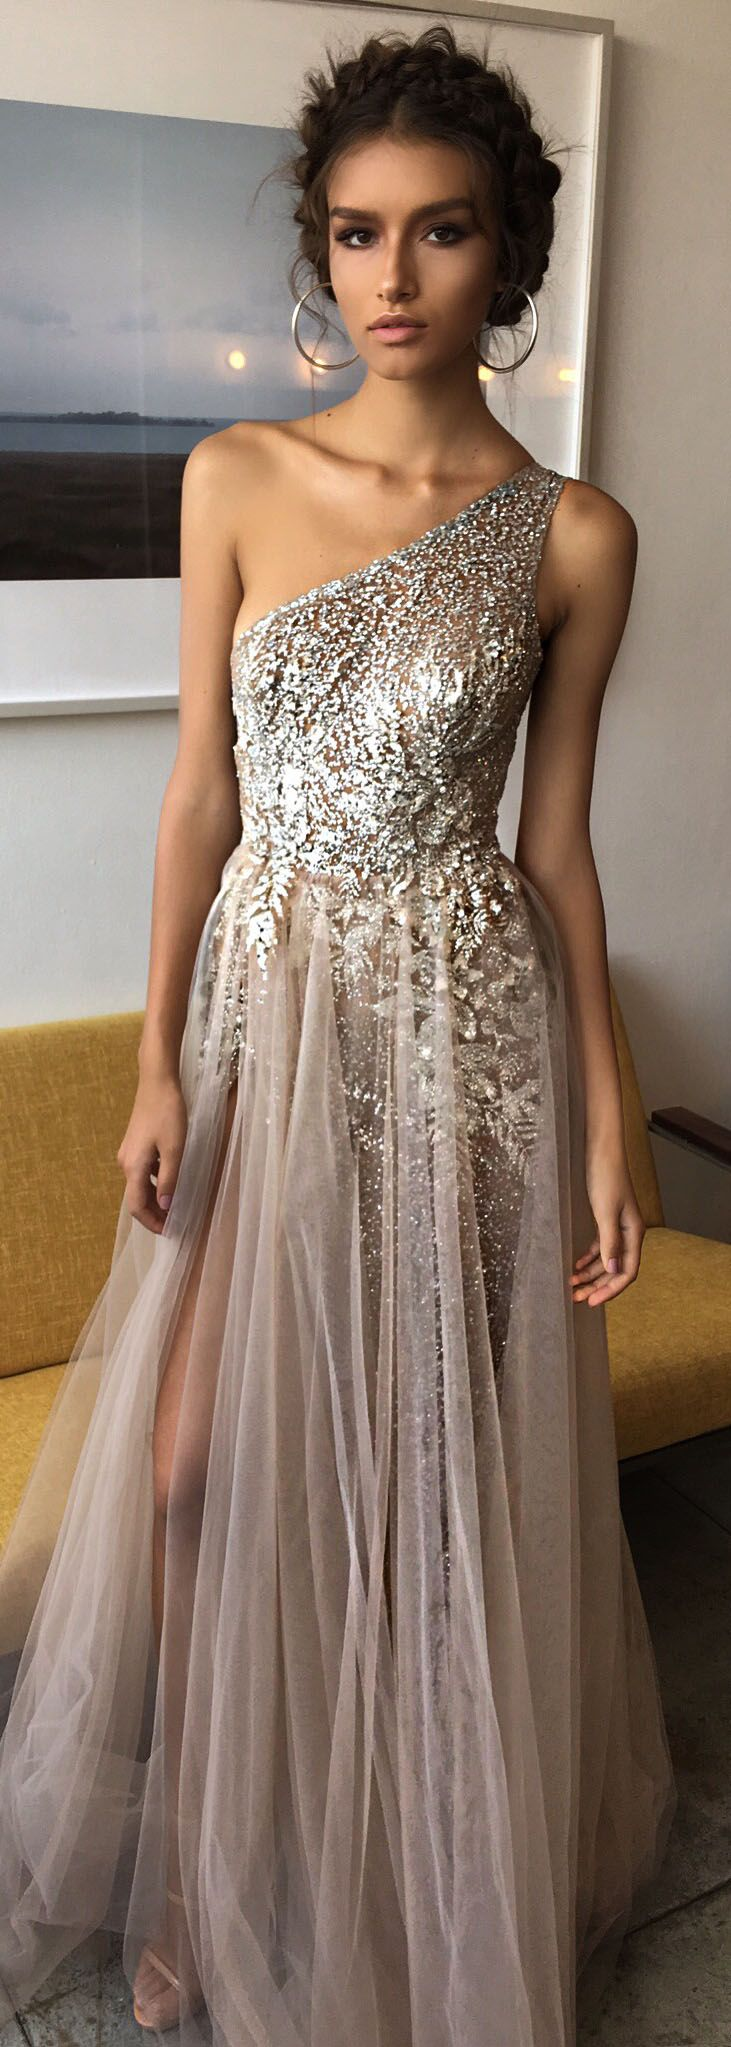 Behind the scenes from the new masterpiece BERTA evening line <3 Sparkle Goddess